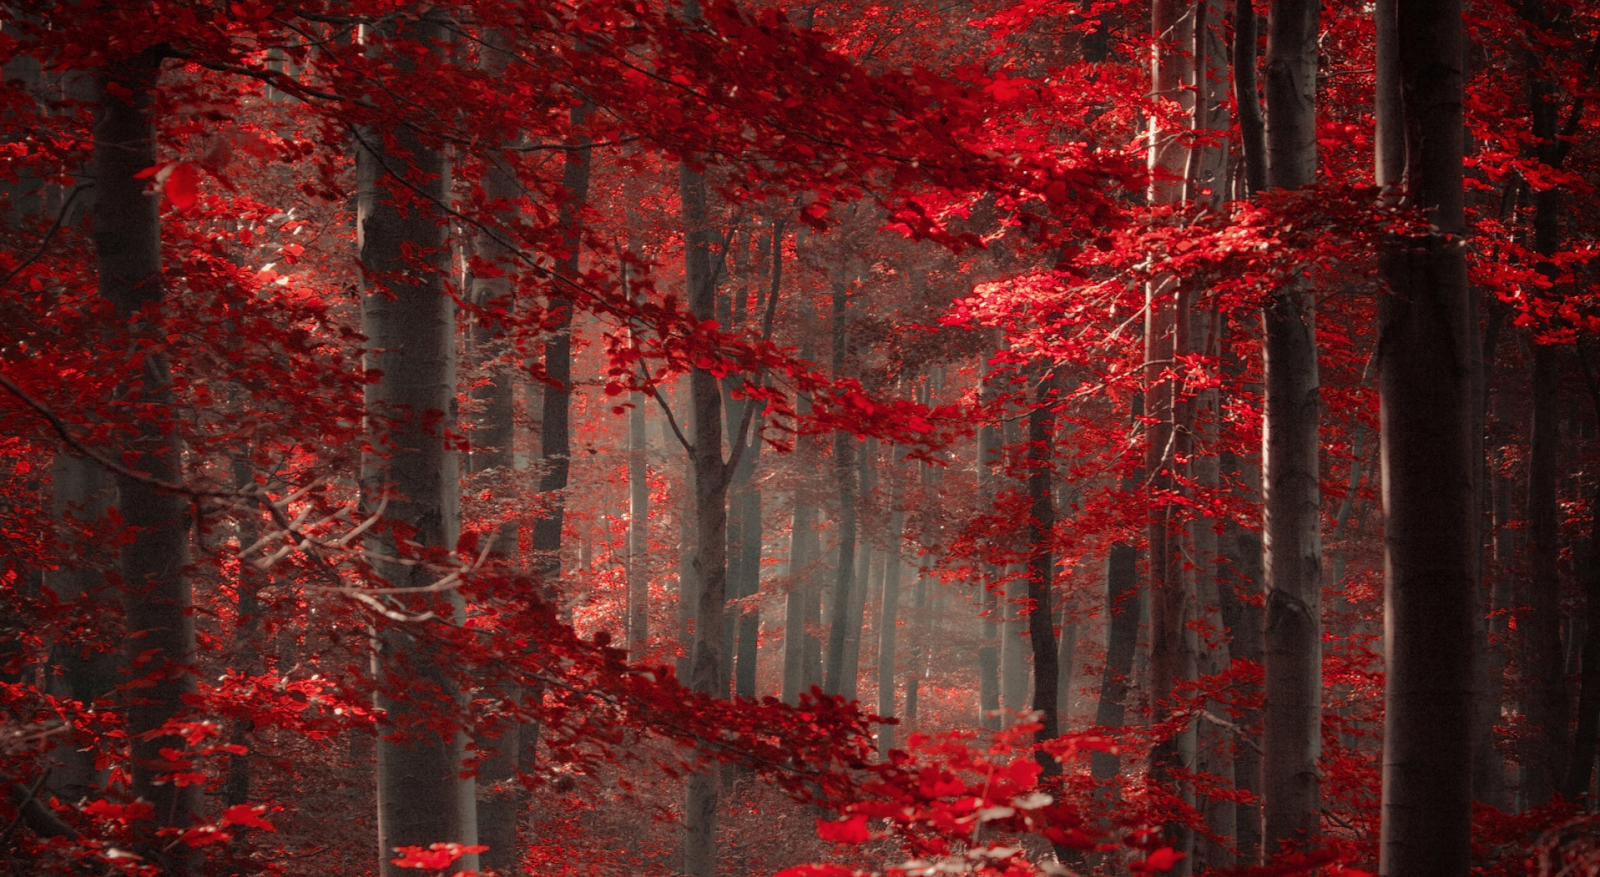 Forest 4k Quality Iphone Wallpaper: Enchanted Forest Wallpaper